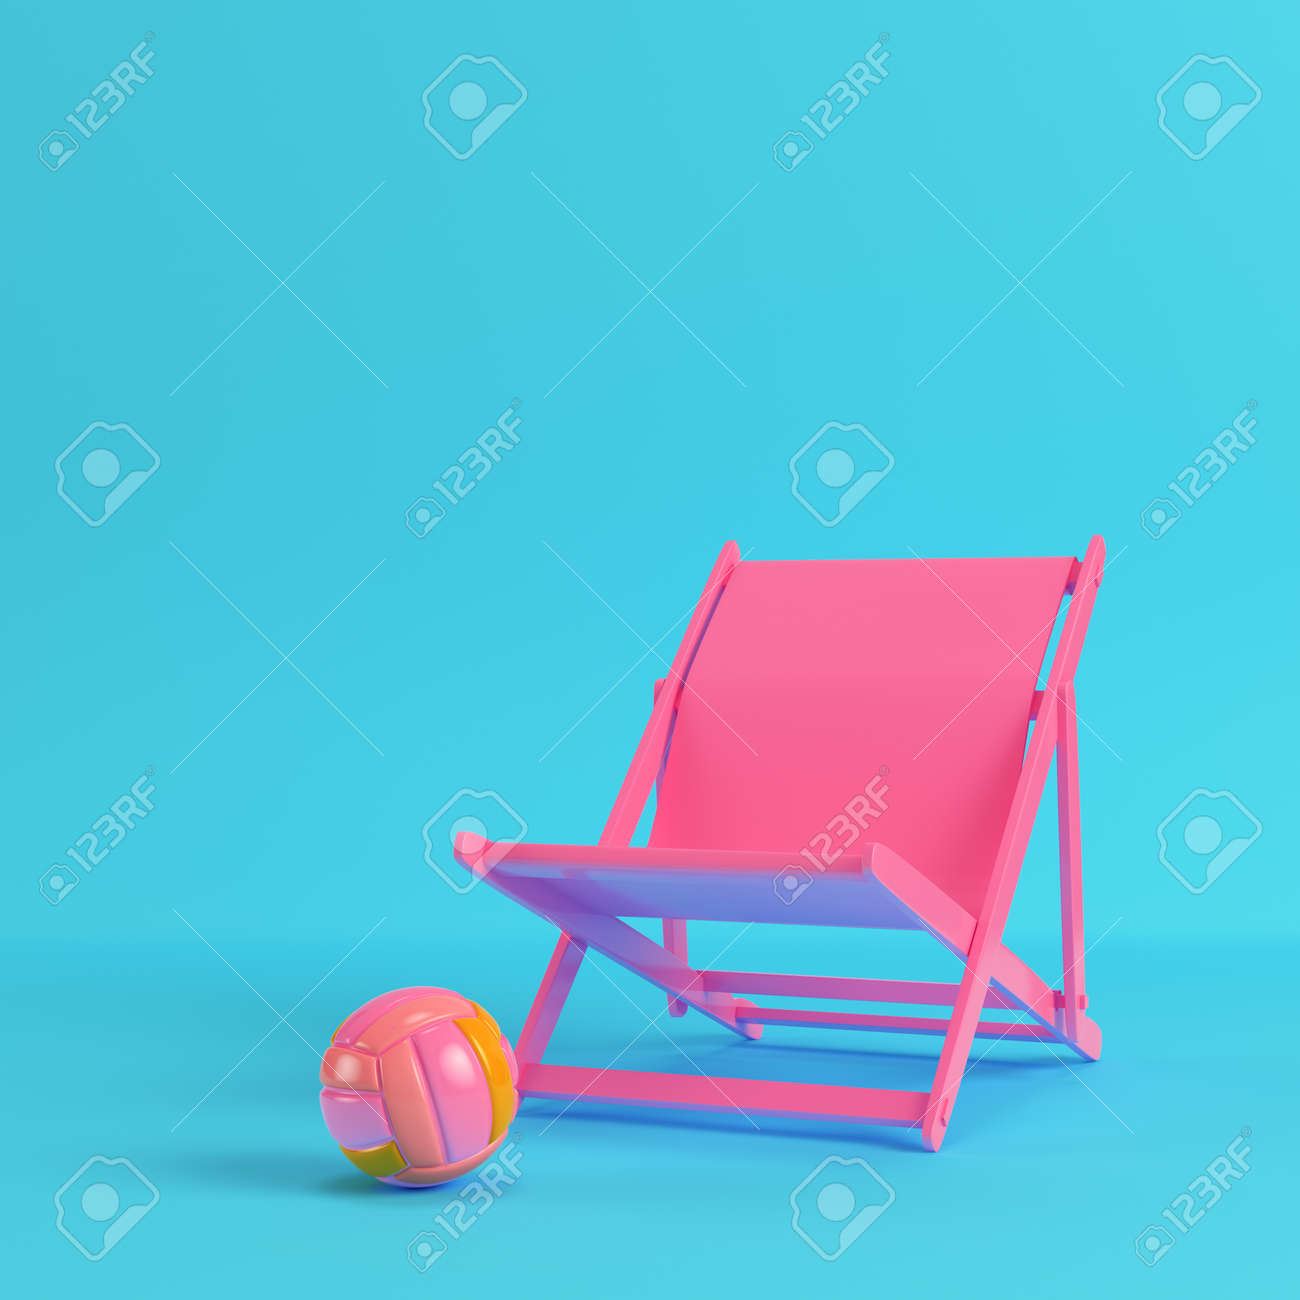 Pink Beach Chair With Volleyball Ball On Bright Blue Background Stock Photo Picture And Royalty Free Image Image 94790835